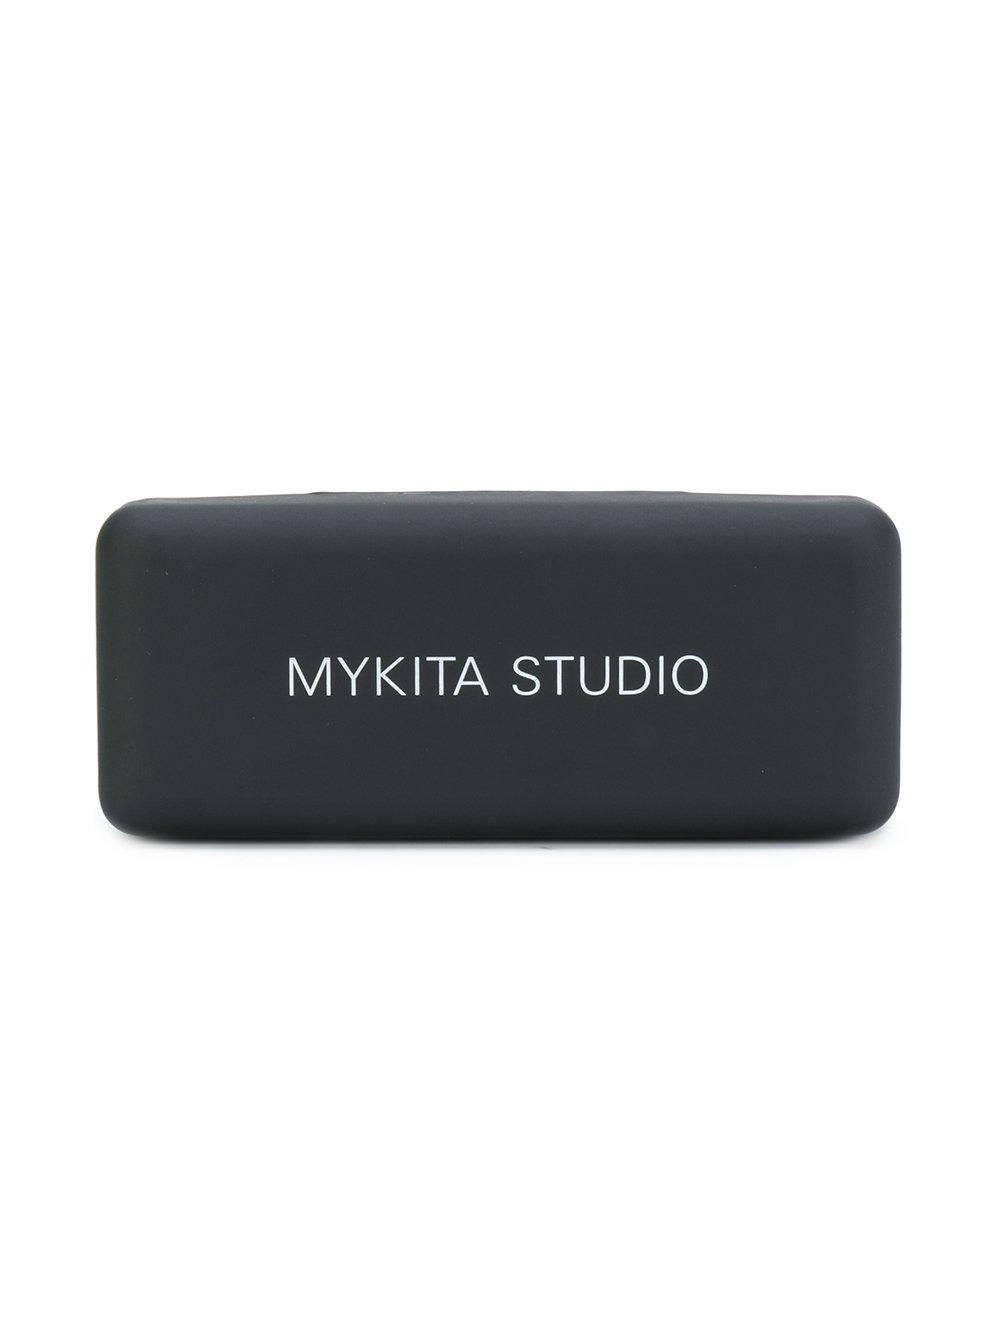 Mykita Studio 1.3 Sunglasses in Metallic